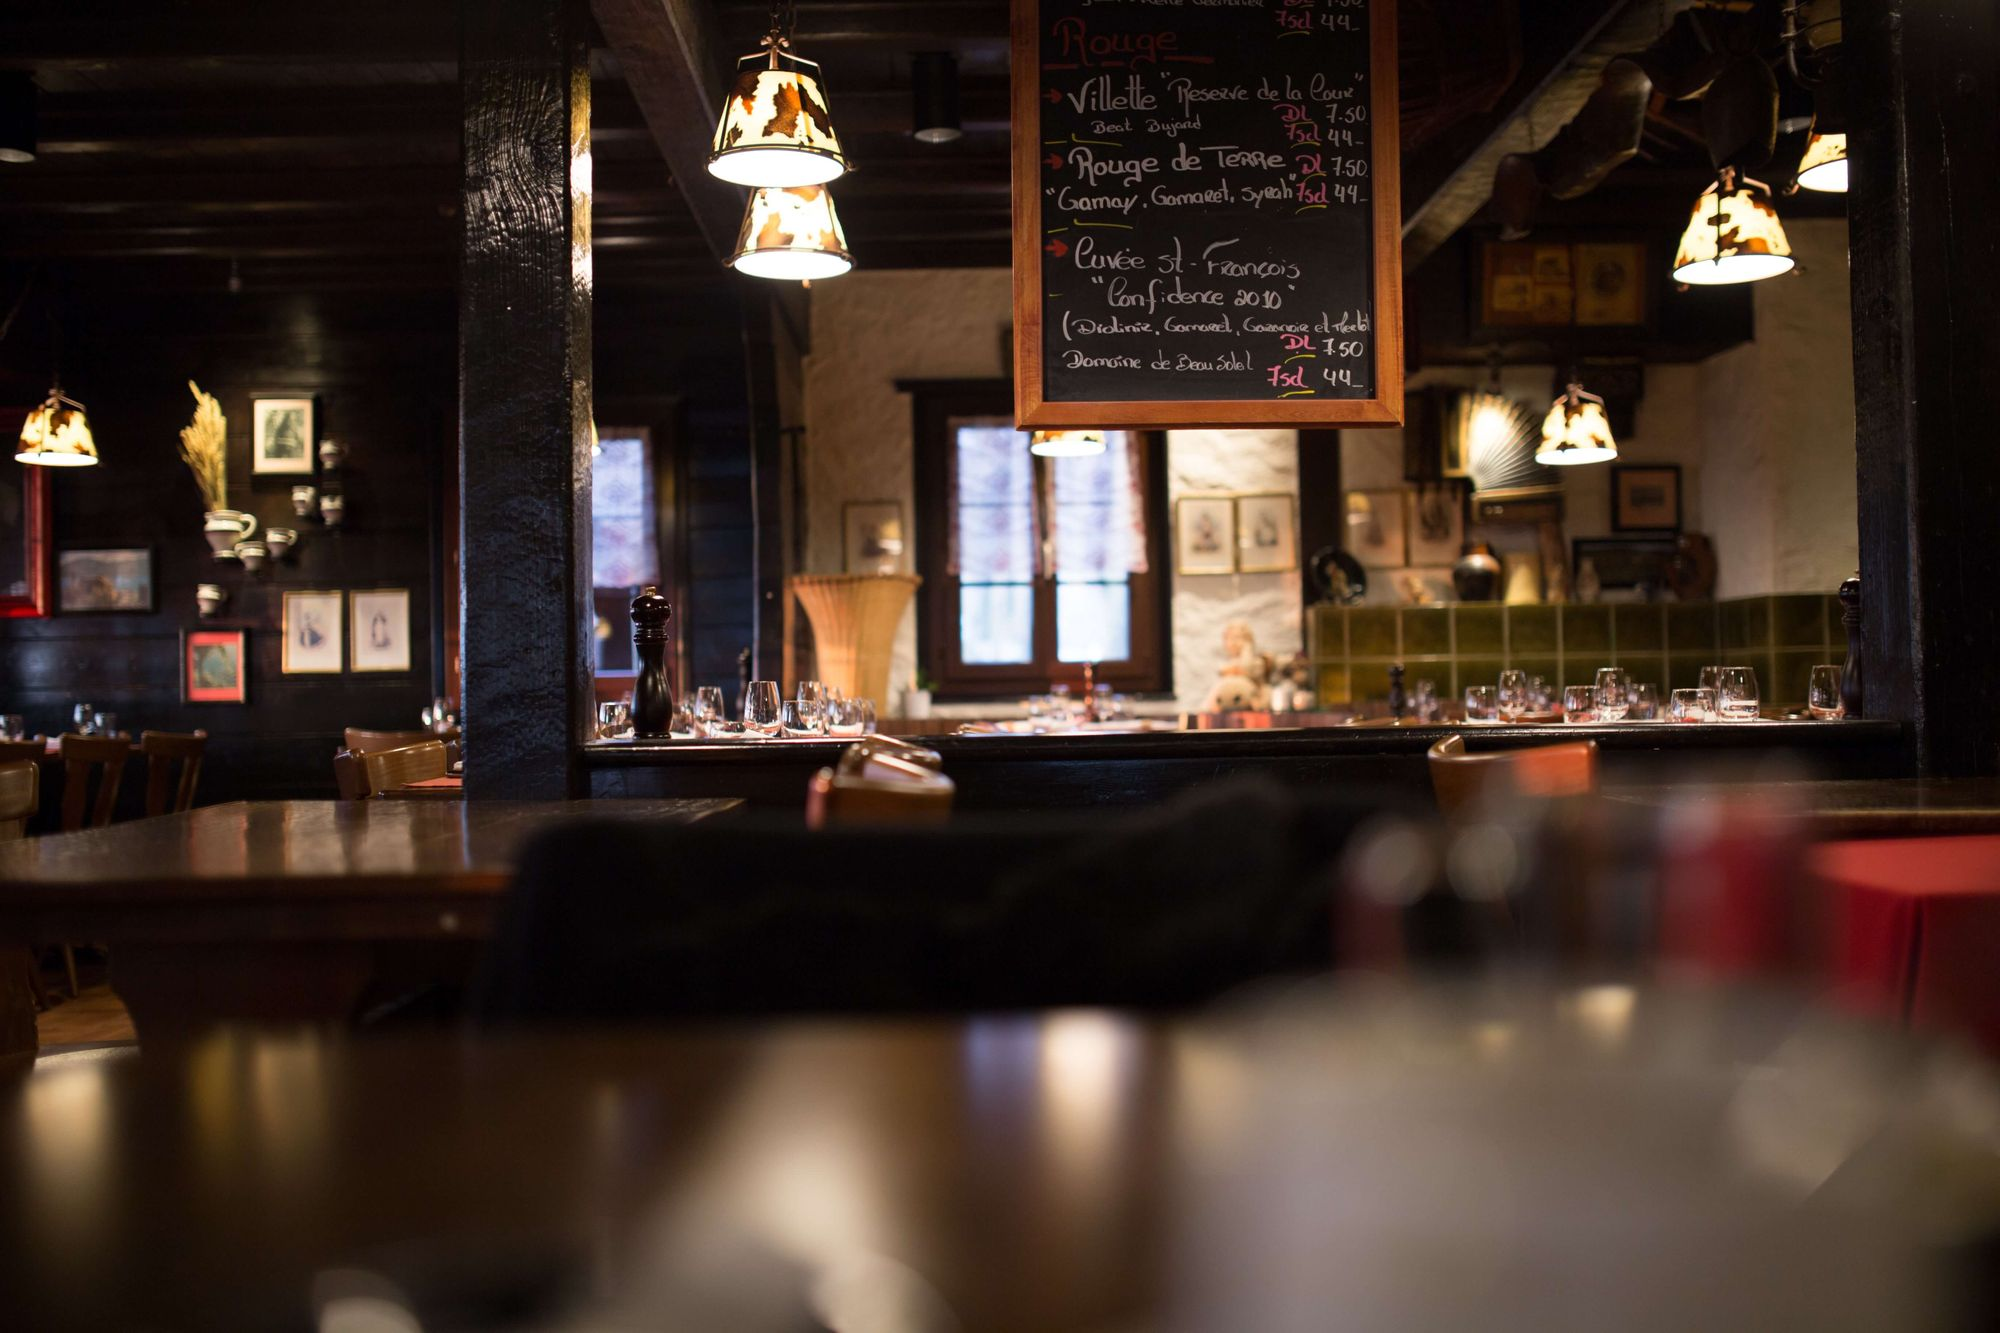 pub with empty tables and chalkboard menu